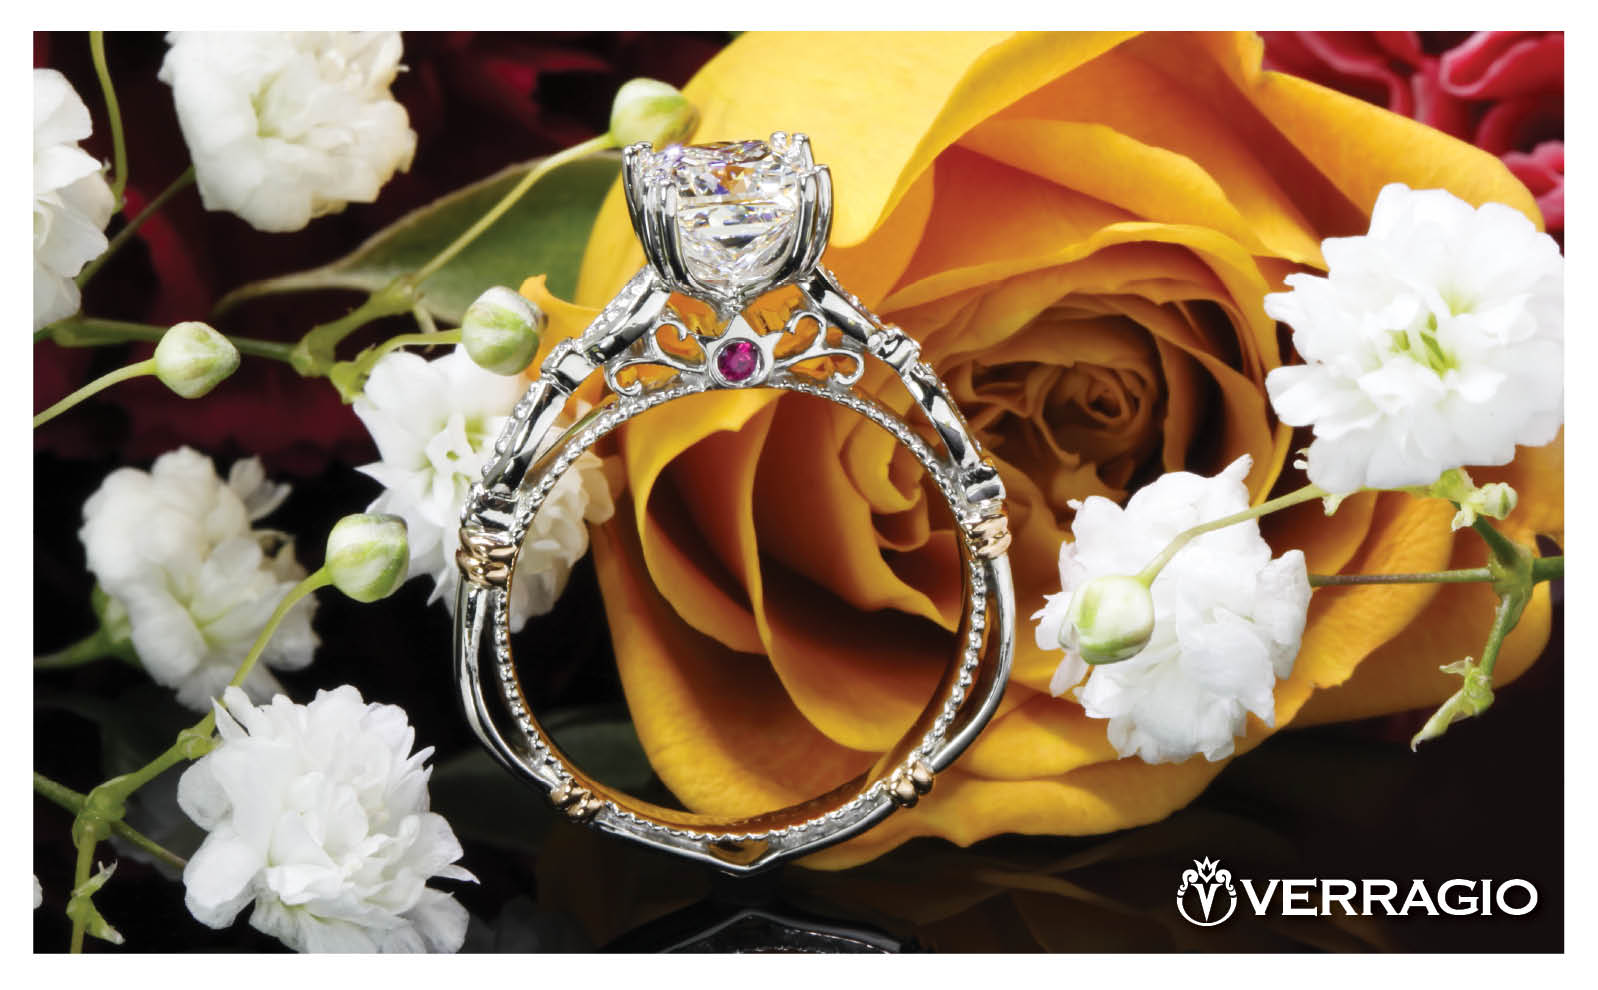 Verragio 2015 Jewelry Calendar Whiteflash